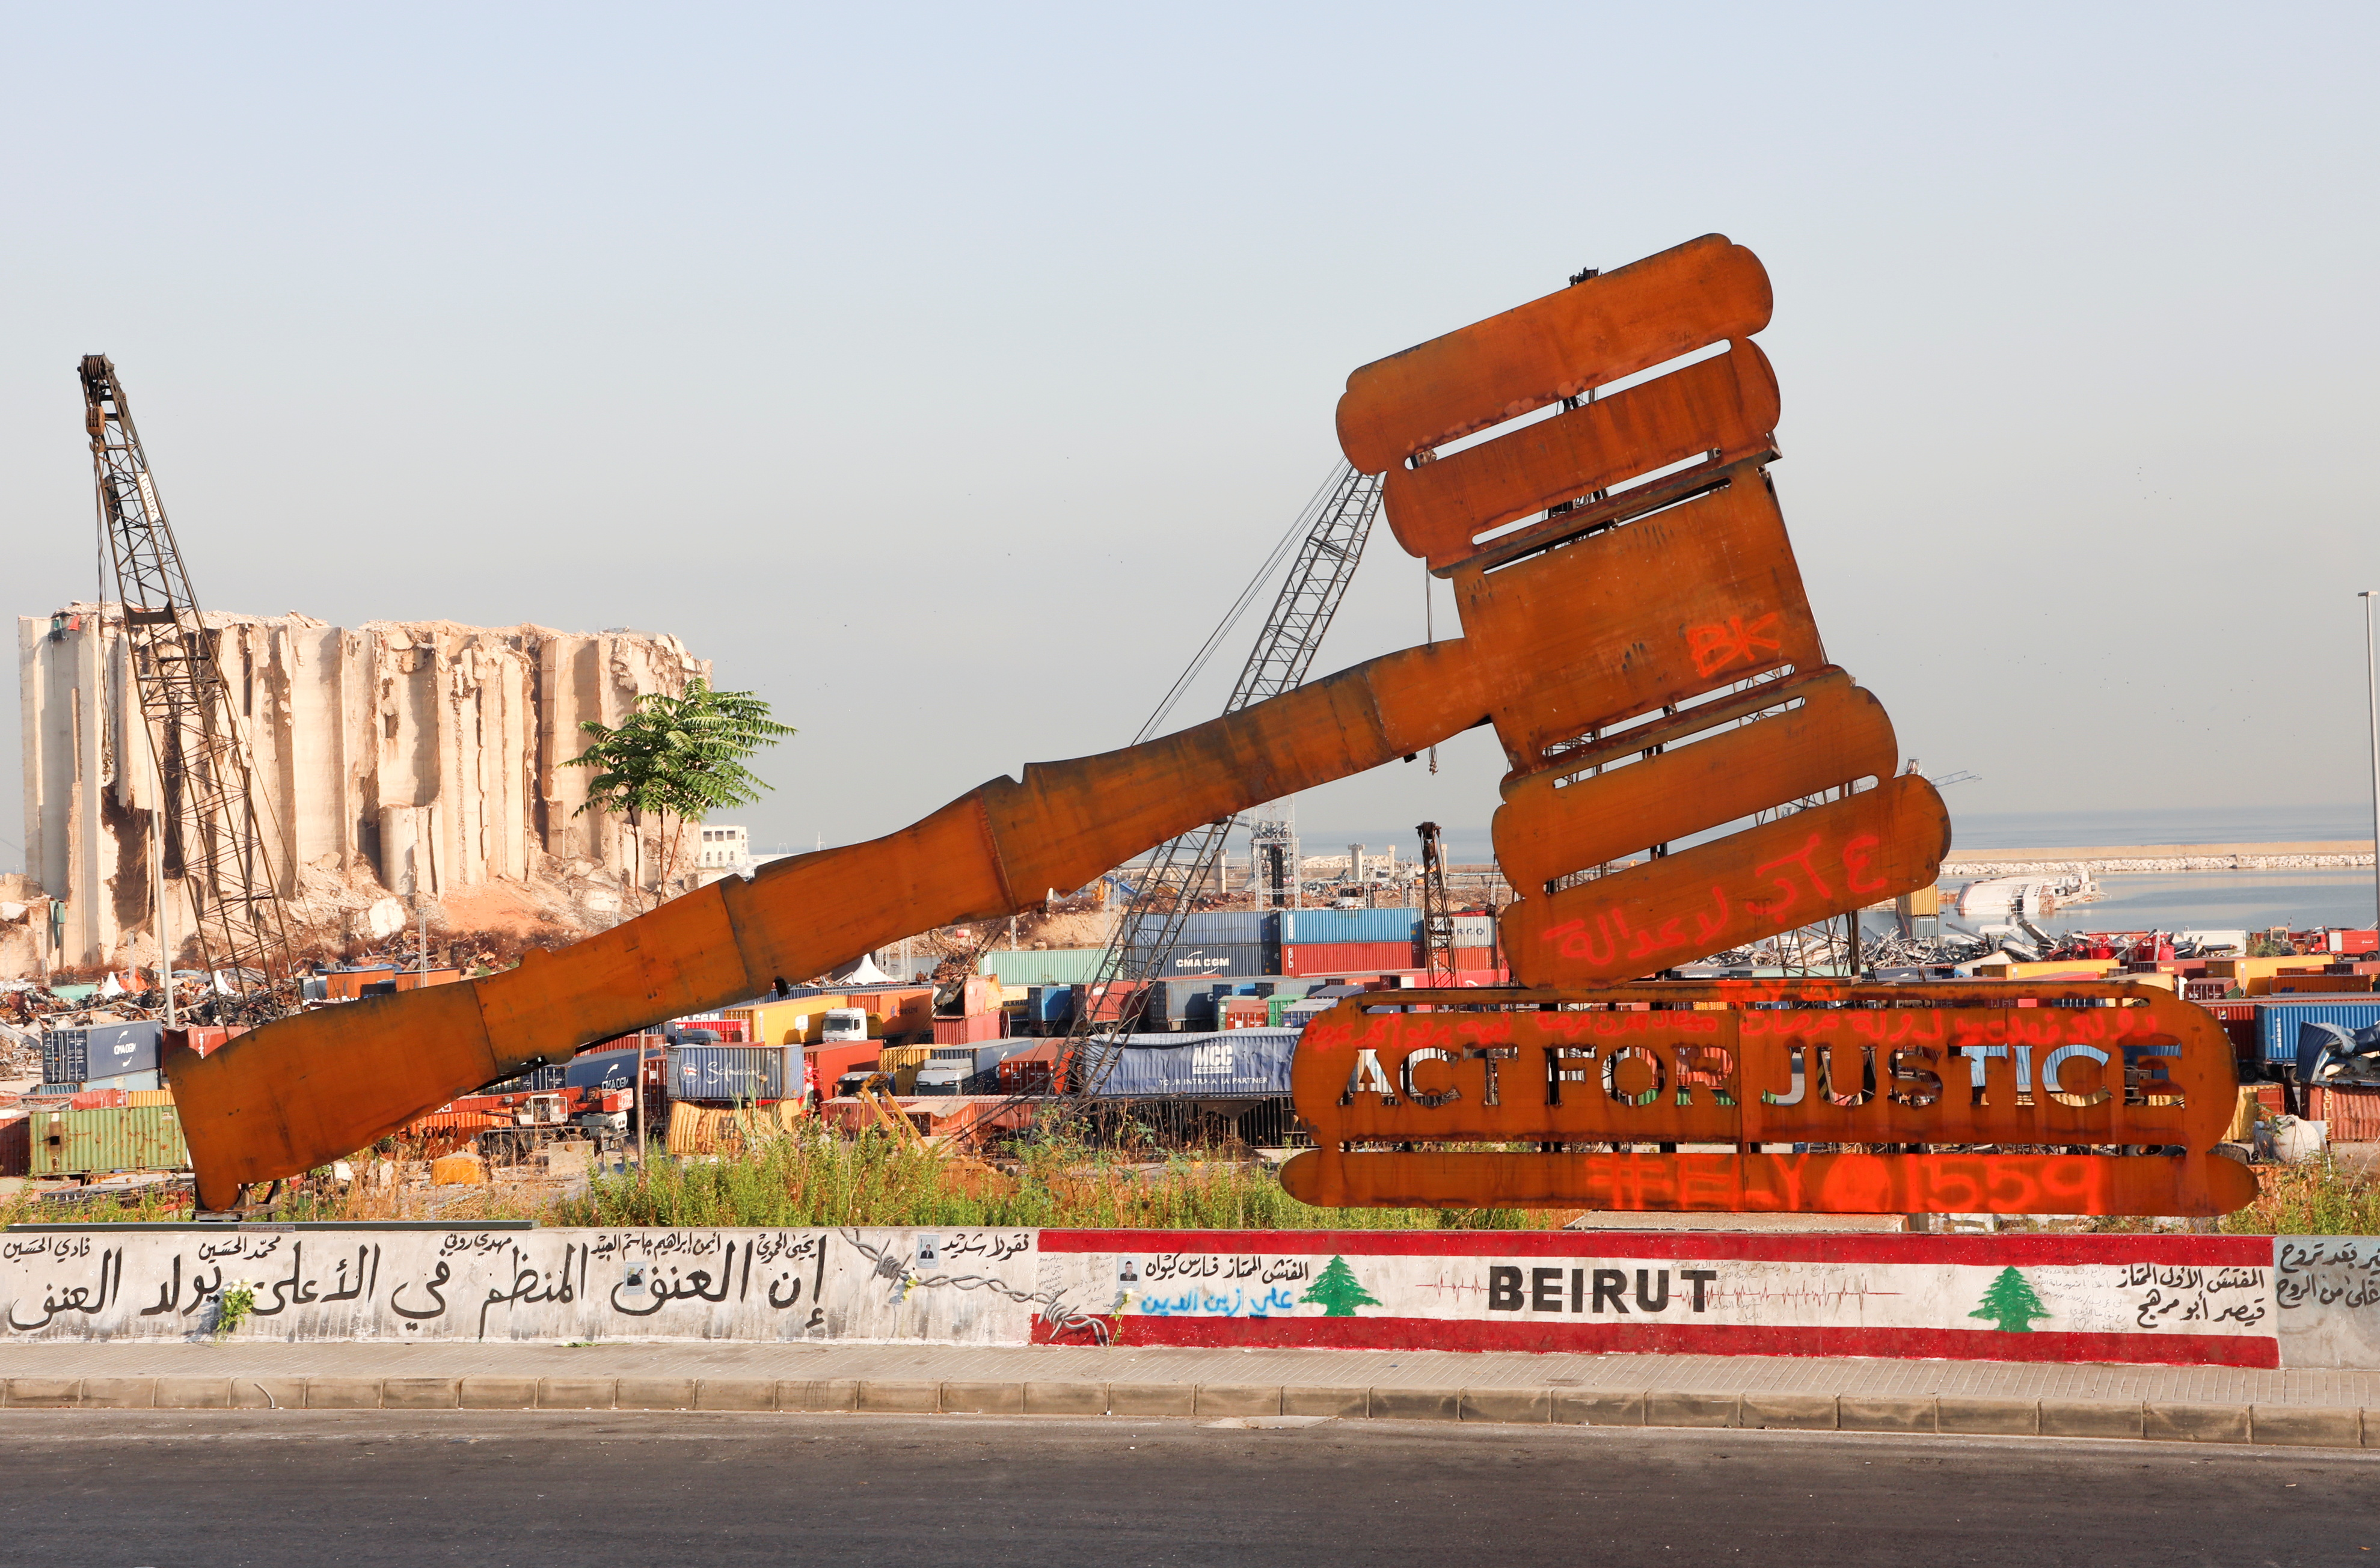 A justice symbol monument is seen near the grain silo damaged during last year's Beirut port blast as Lebanon marks the one-year anniversary of Beirut port explosion, in Beirut, Lebanon August 4, 2021. REUTERS/Mohamed Azakir